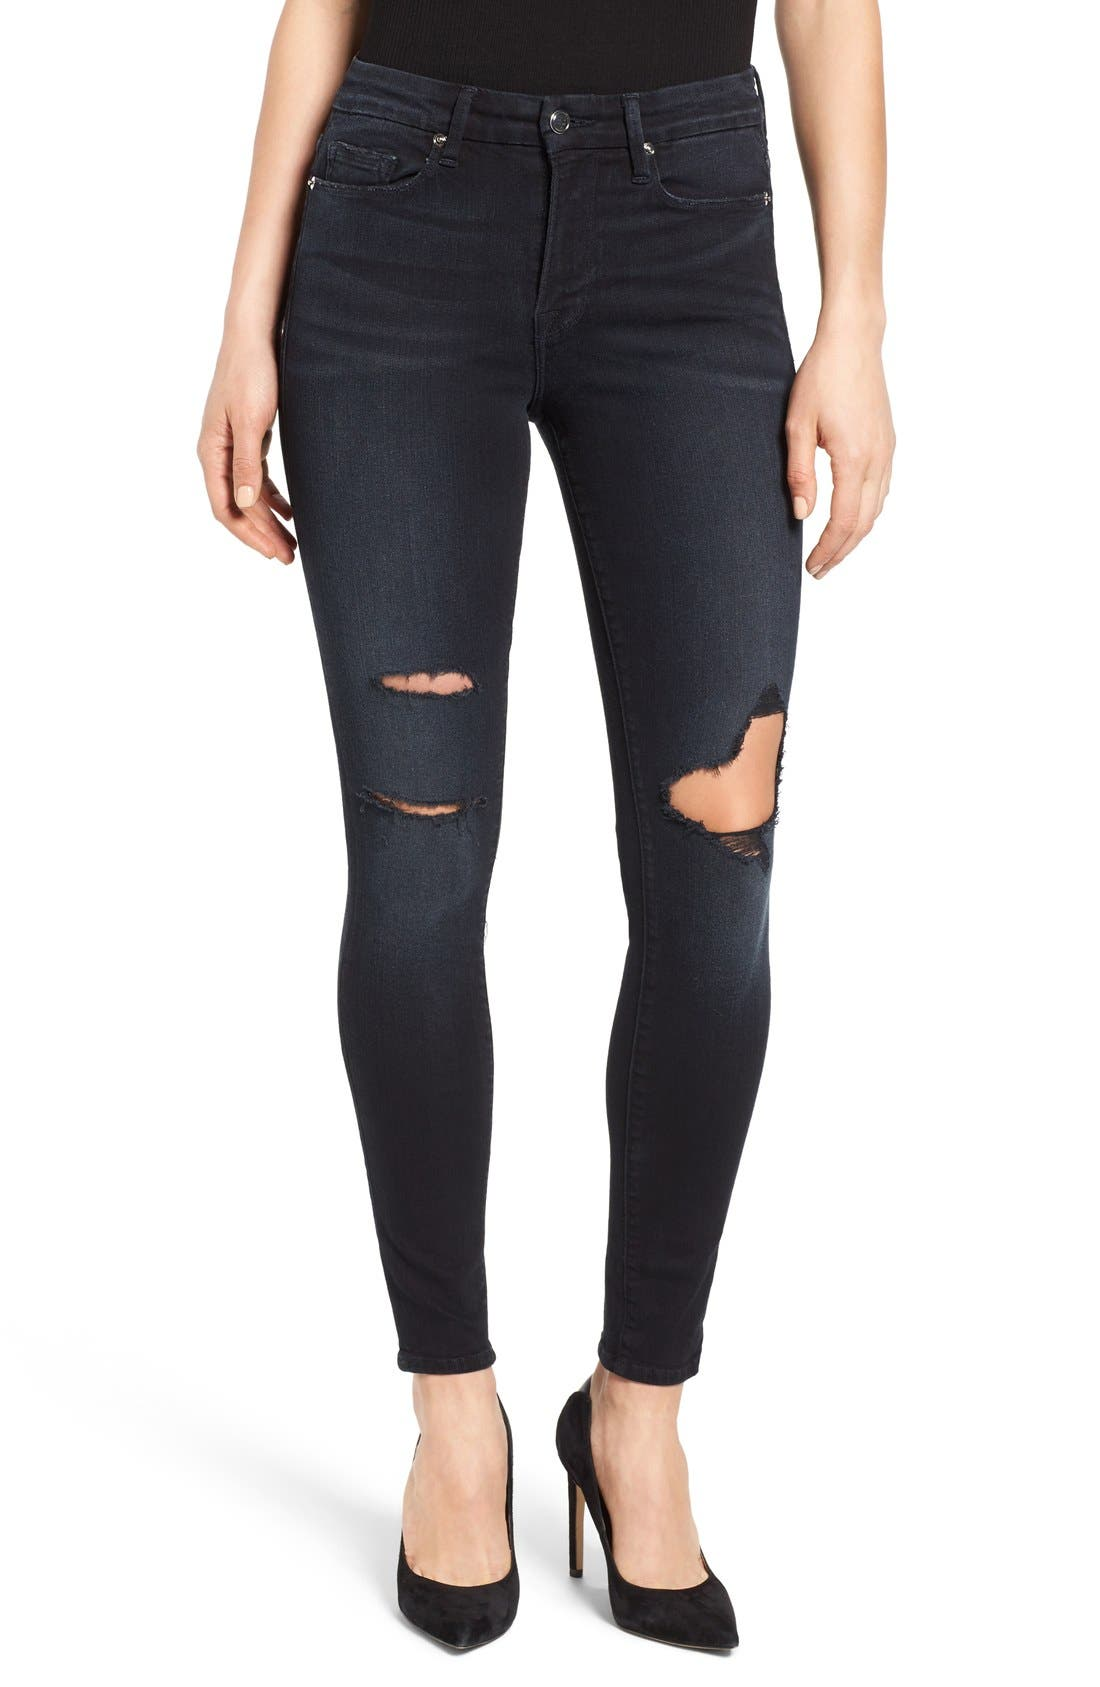 Good Legs High Rise Ripped Skinny Jeans,                             Main thumbnail 1, color,                             Blue 001 Washed Black